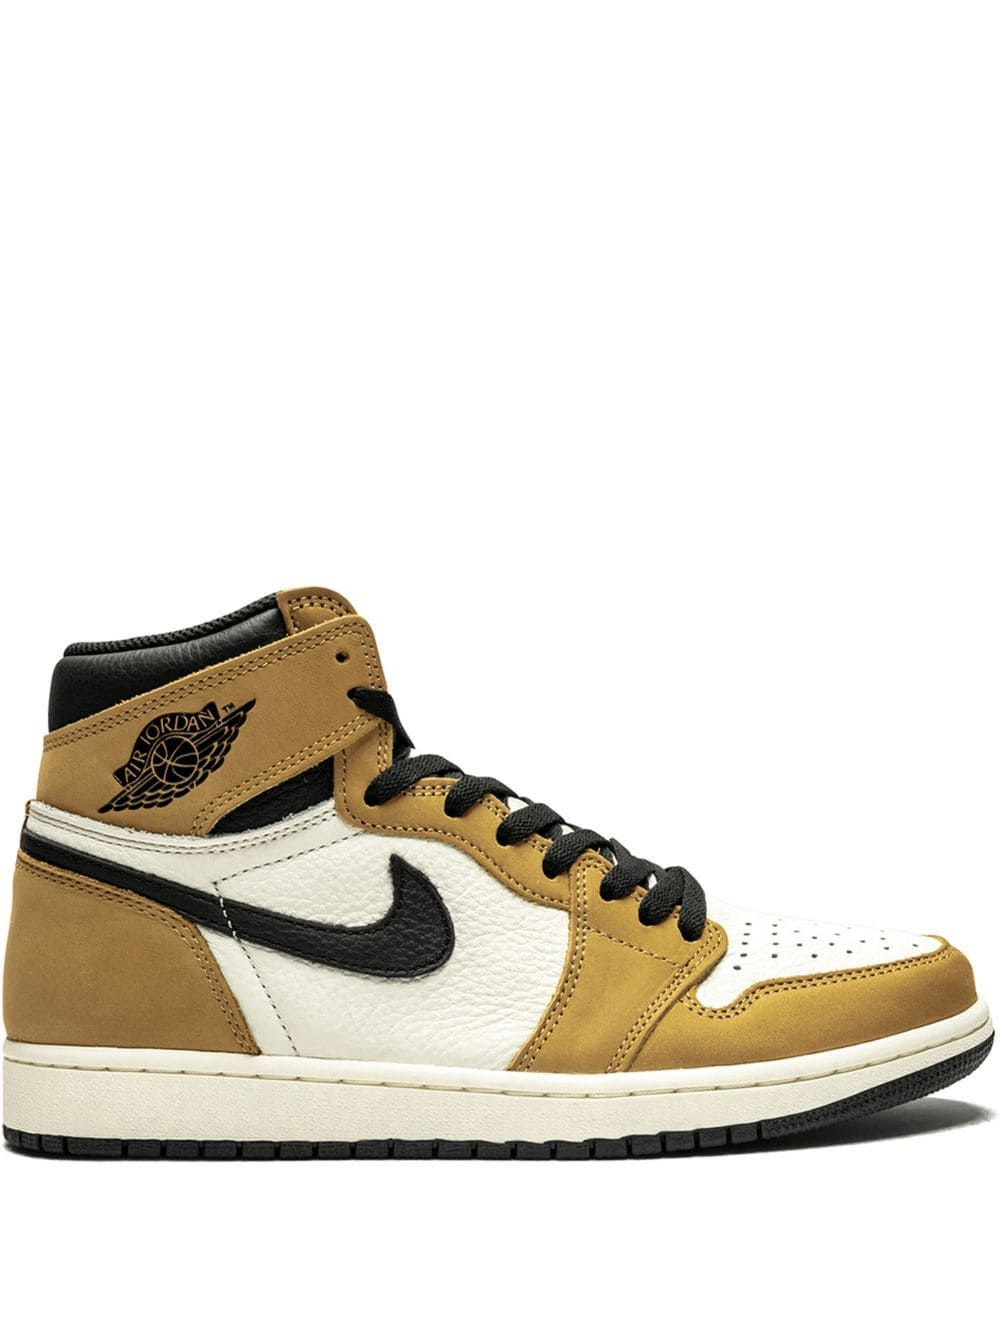 Air Jordan 1 High Og Nrg Sneakers In Brown White Sneakers Men